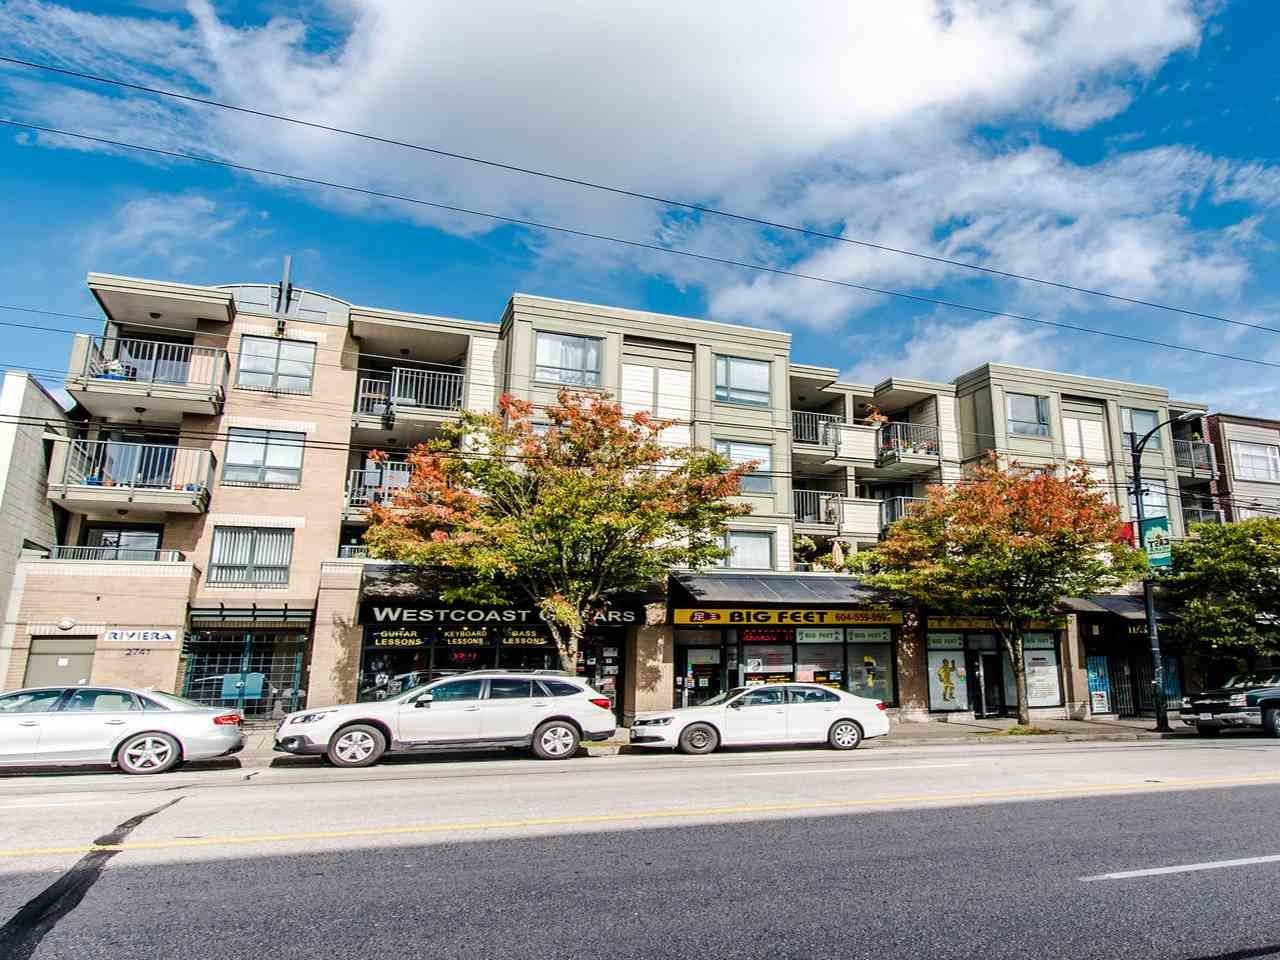 """Main Photo: 103 2741 E HASTINGS Street in Vancouver: Hastings Sunrise Condo for sale in """"The Riviera"""" (Vancouver East)  : MLS®# R2538941"""